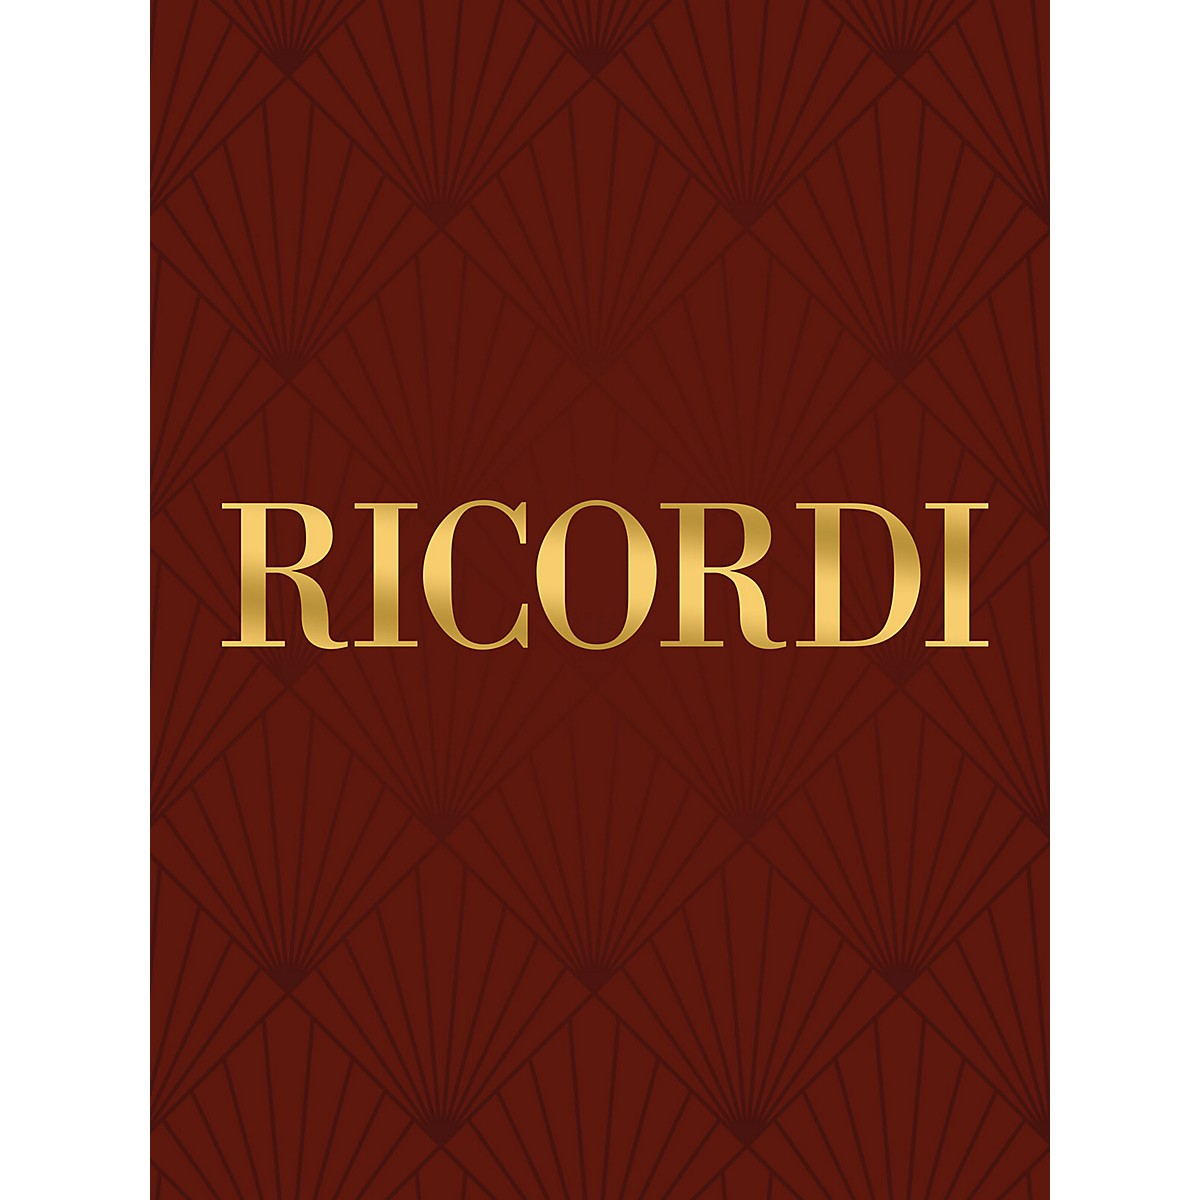 Ricordi 17 String Quartets (Miniature Full Score) Study Score Series Composed by Ludwig van Beethoven